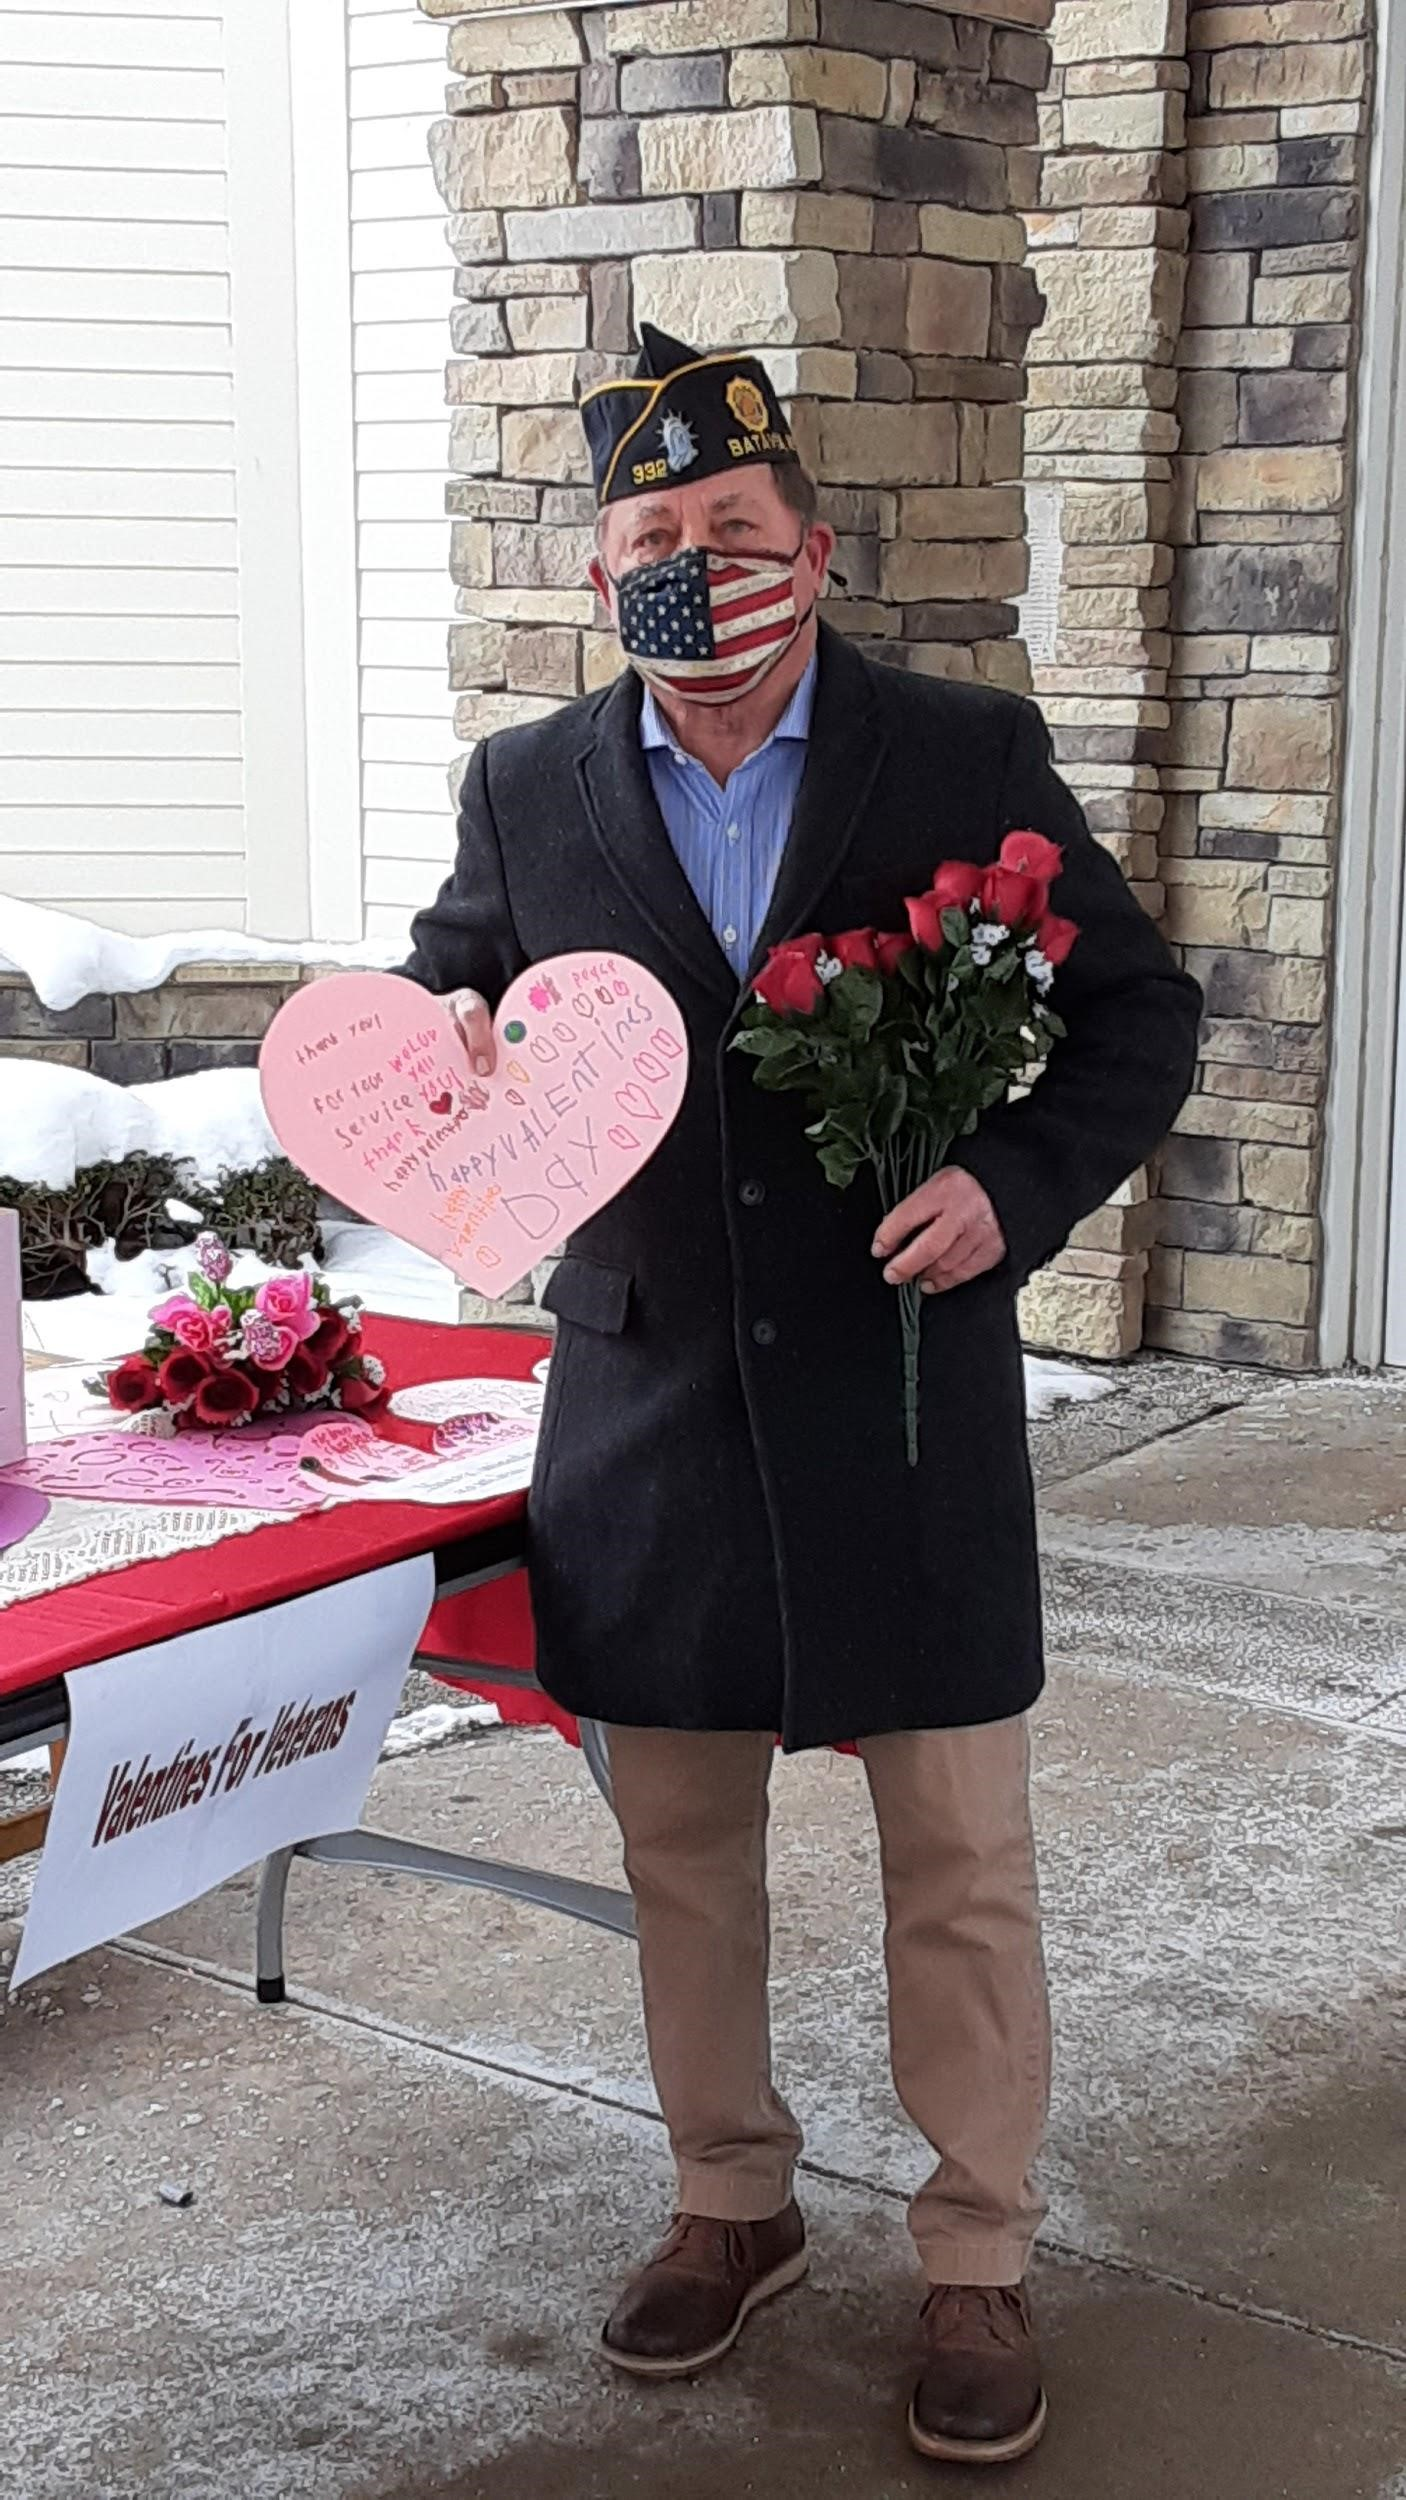 Hawley drops off valentines at the New York State Veterans' Home in Batavia on Feb. 11, 2021